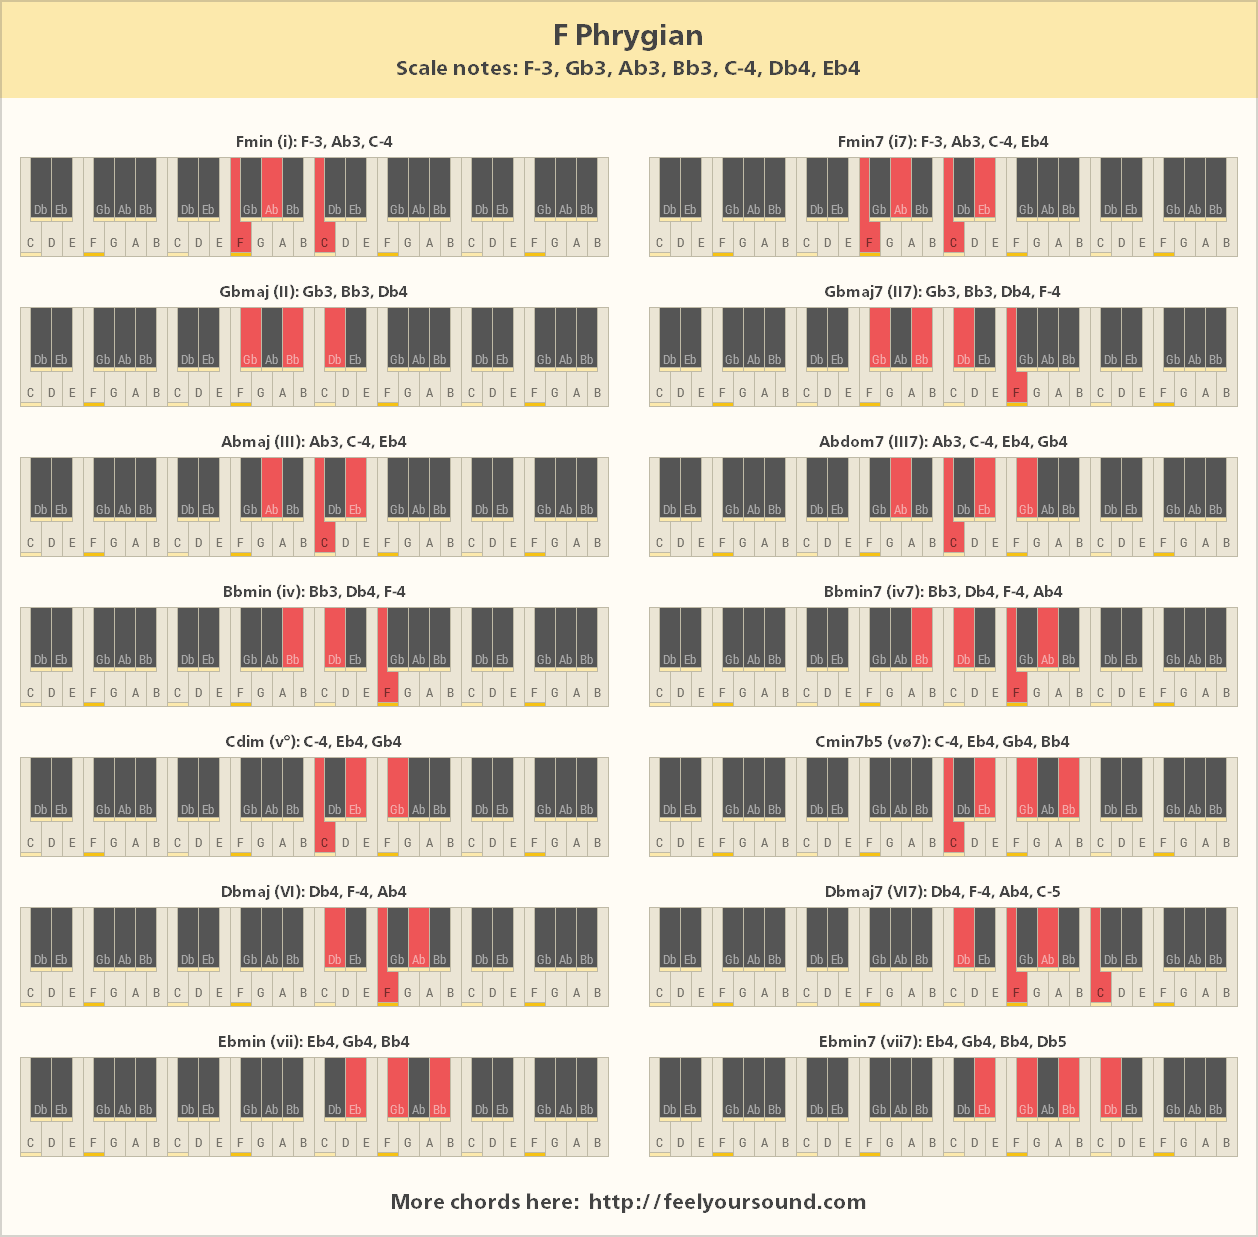 Chords and scale notes of f phrygian all important chords of f phrygian hexwebz Gallery